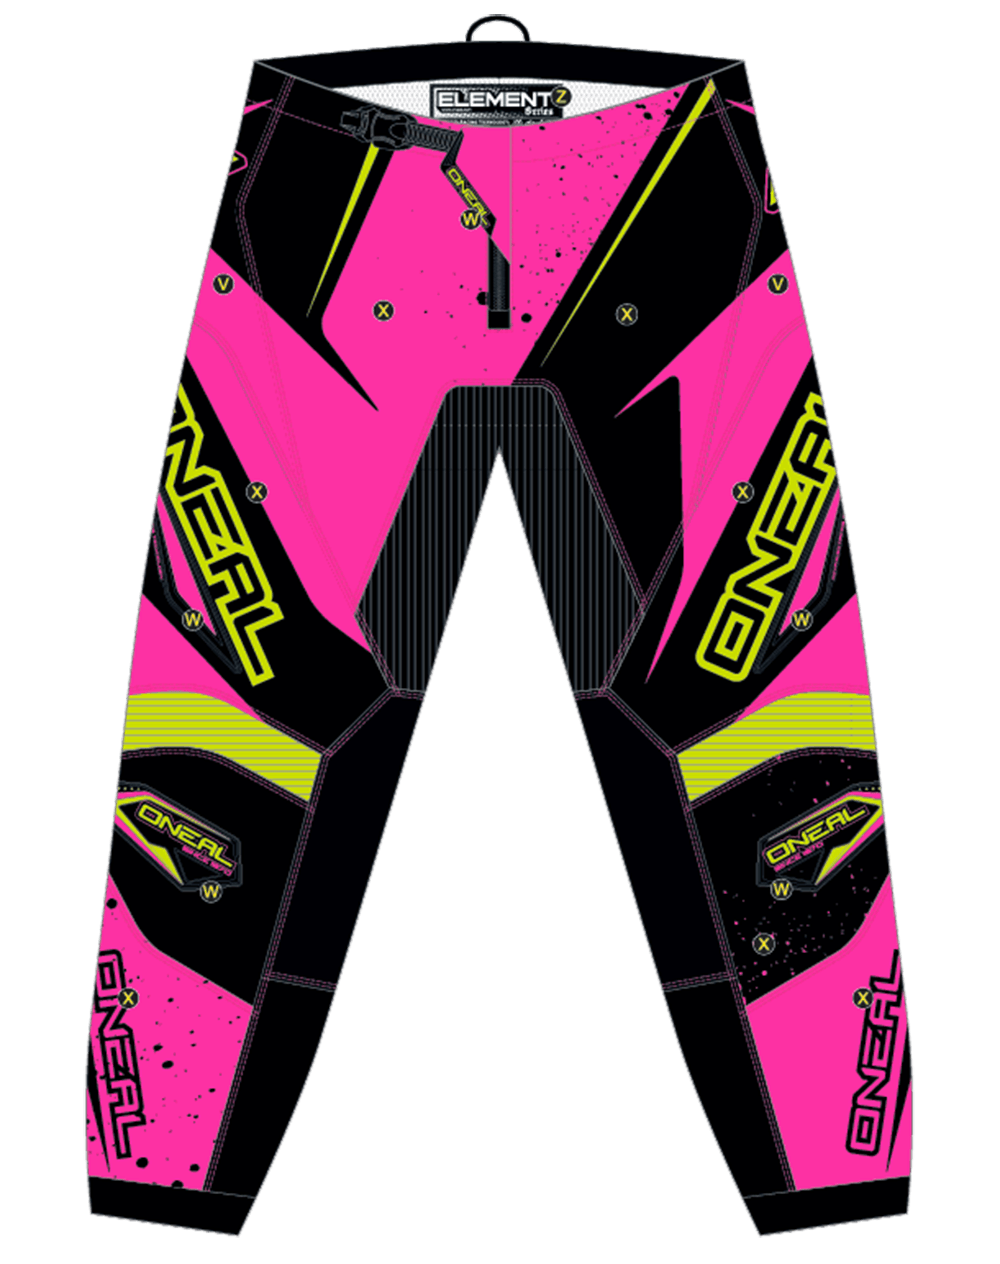 ELEMENT Pants RACEWEAR WOMEN pink/yellow 7/8 (32) - ELEMENT Pants RACEWEAR WOMEN pink/yellow 7/8 (32)